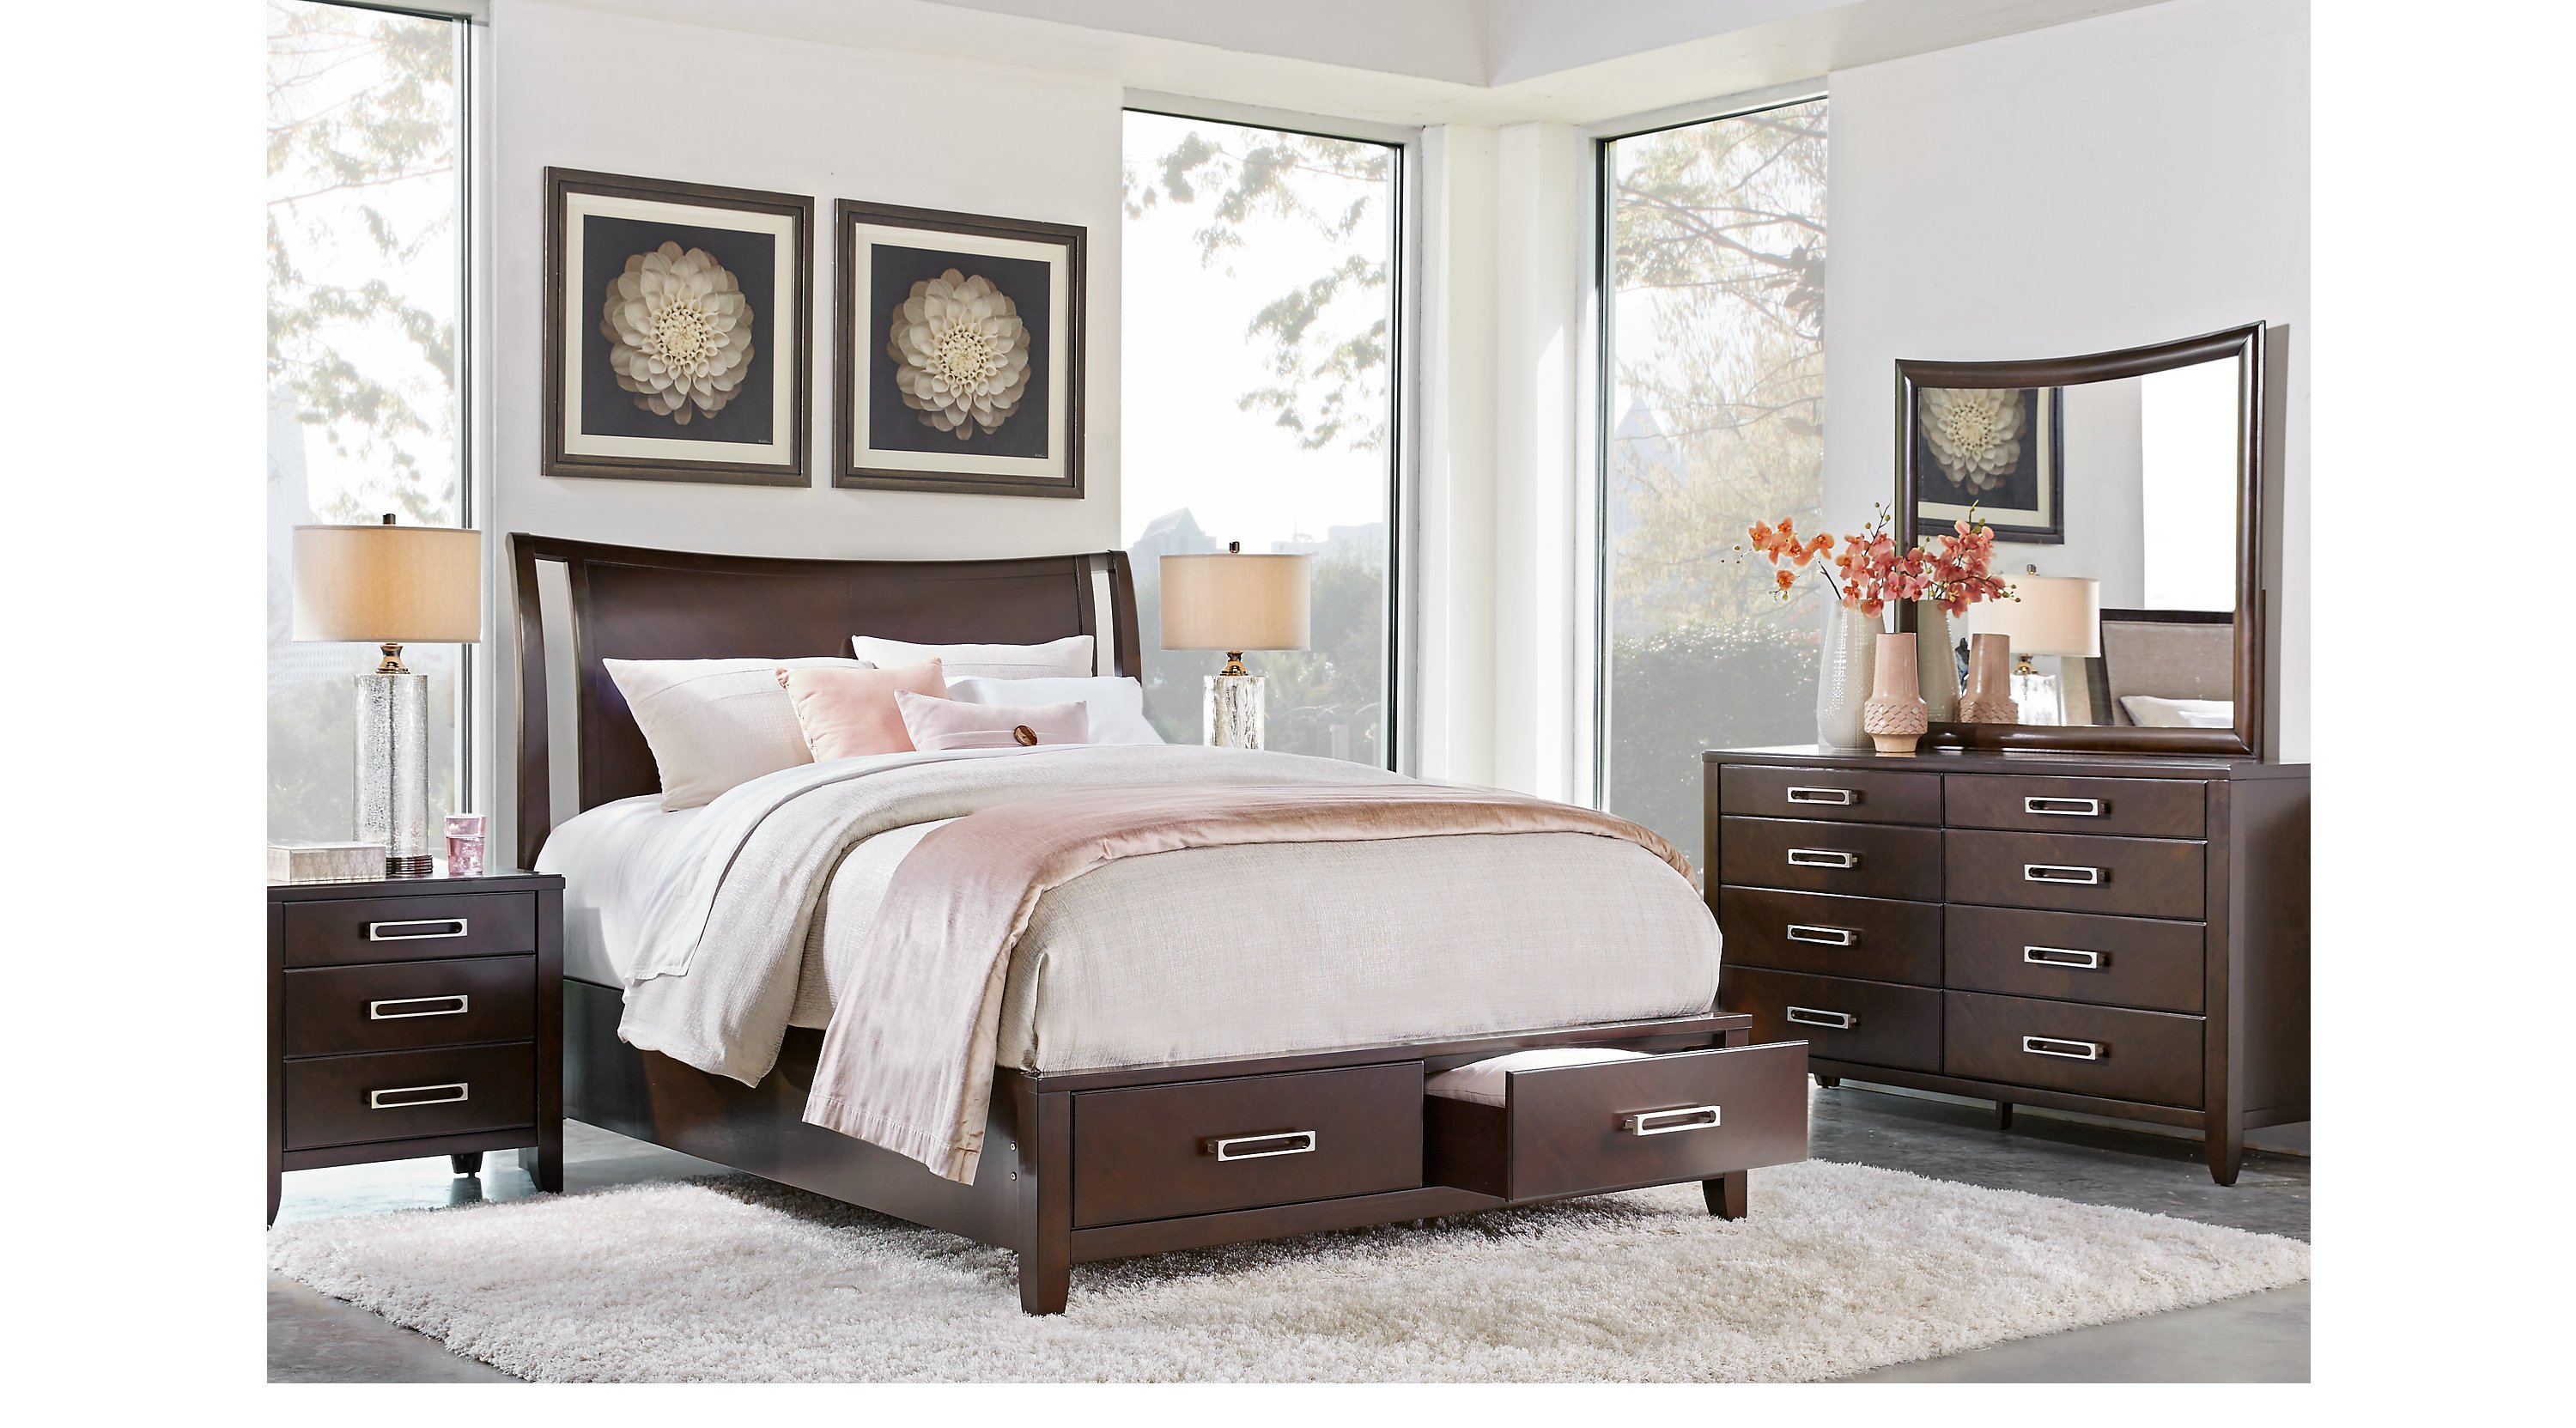 Best Bellissimo Java Dark Brown 5 Pc Queen Sleigh Bedroom With Storage Contemporary With Pictures